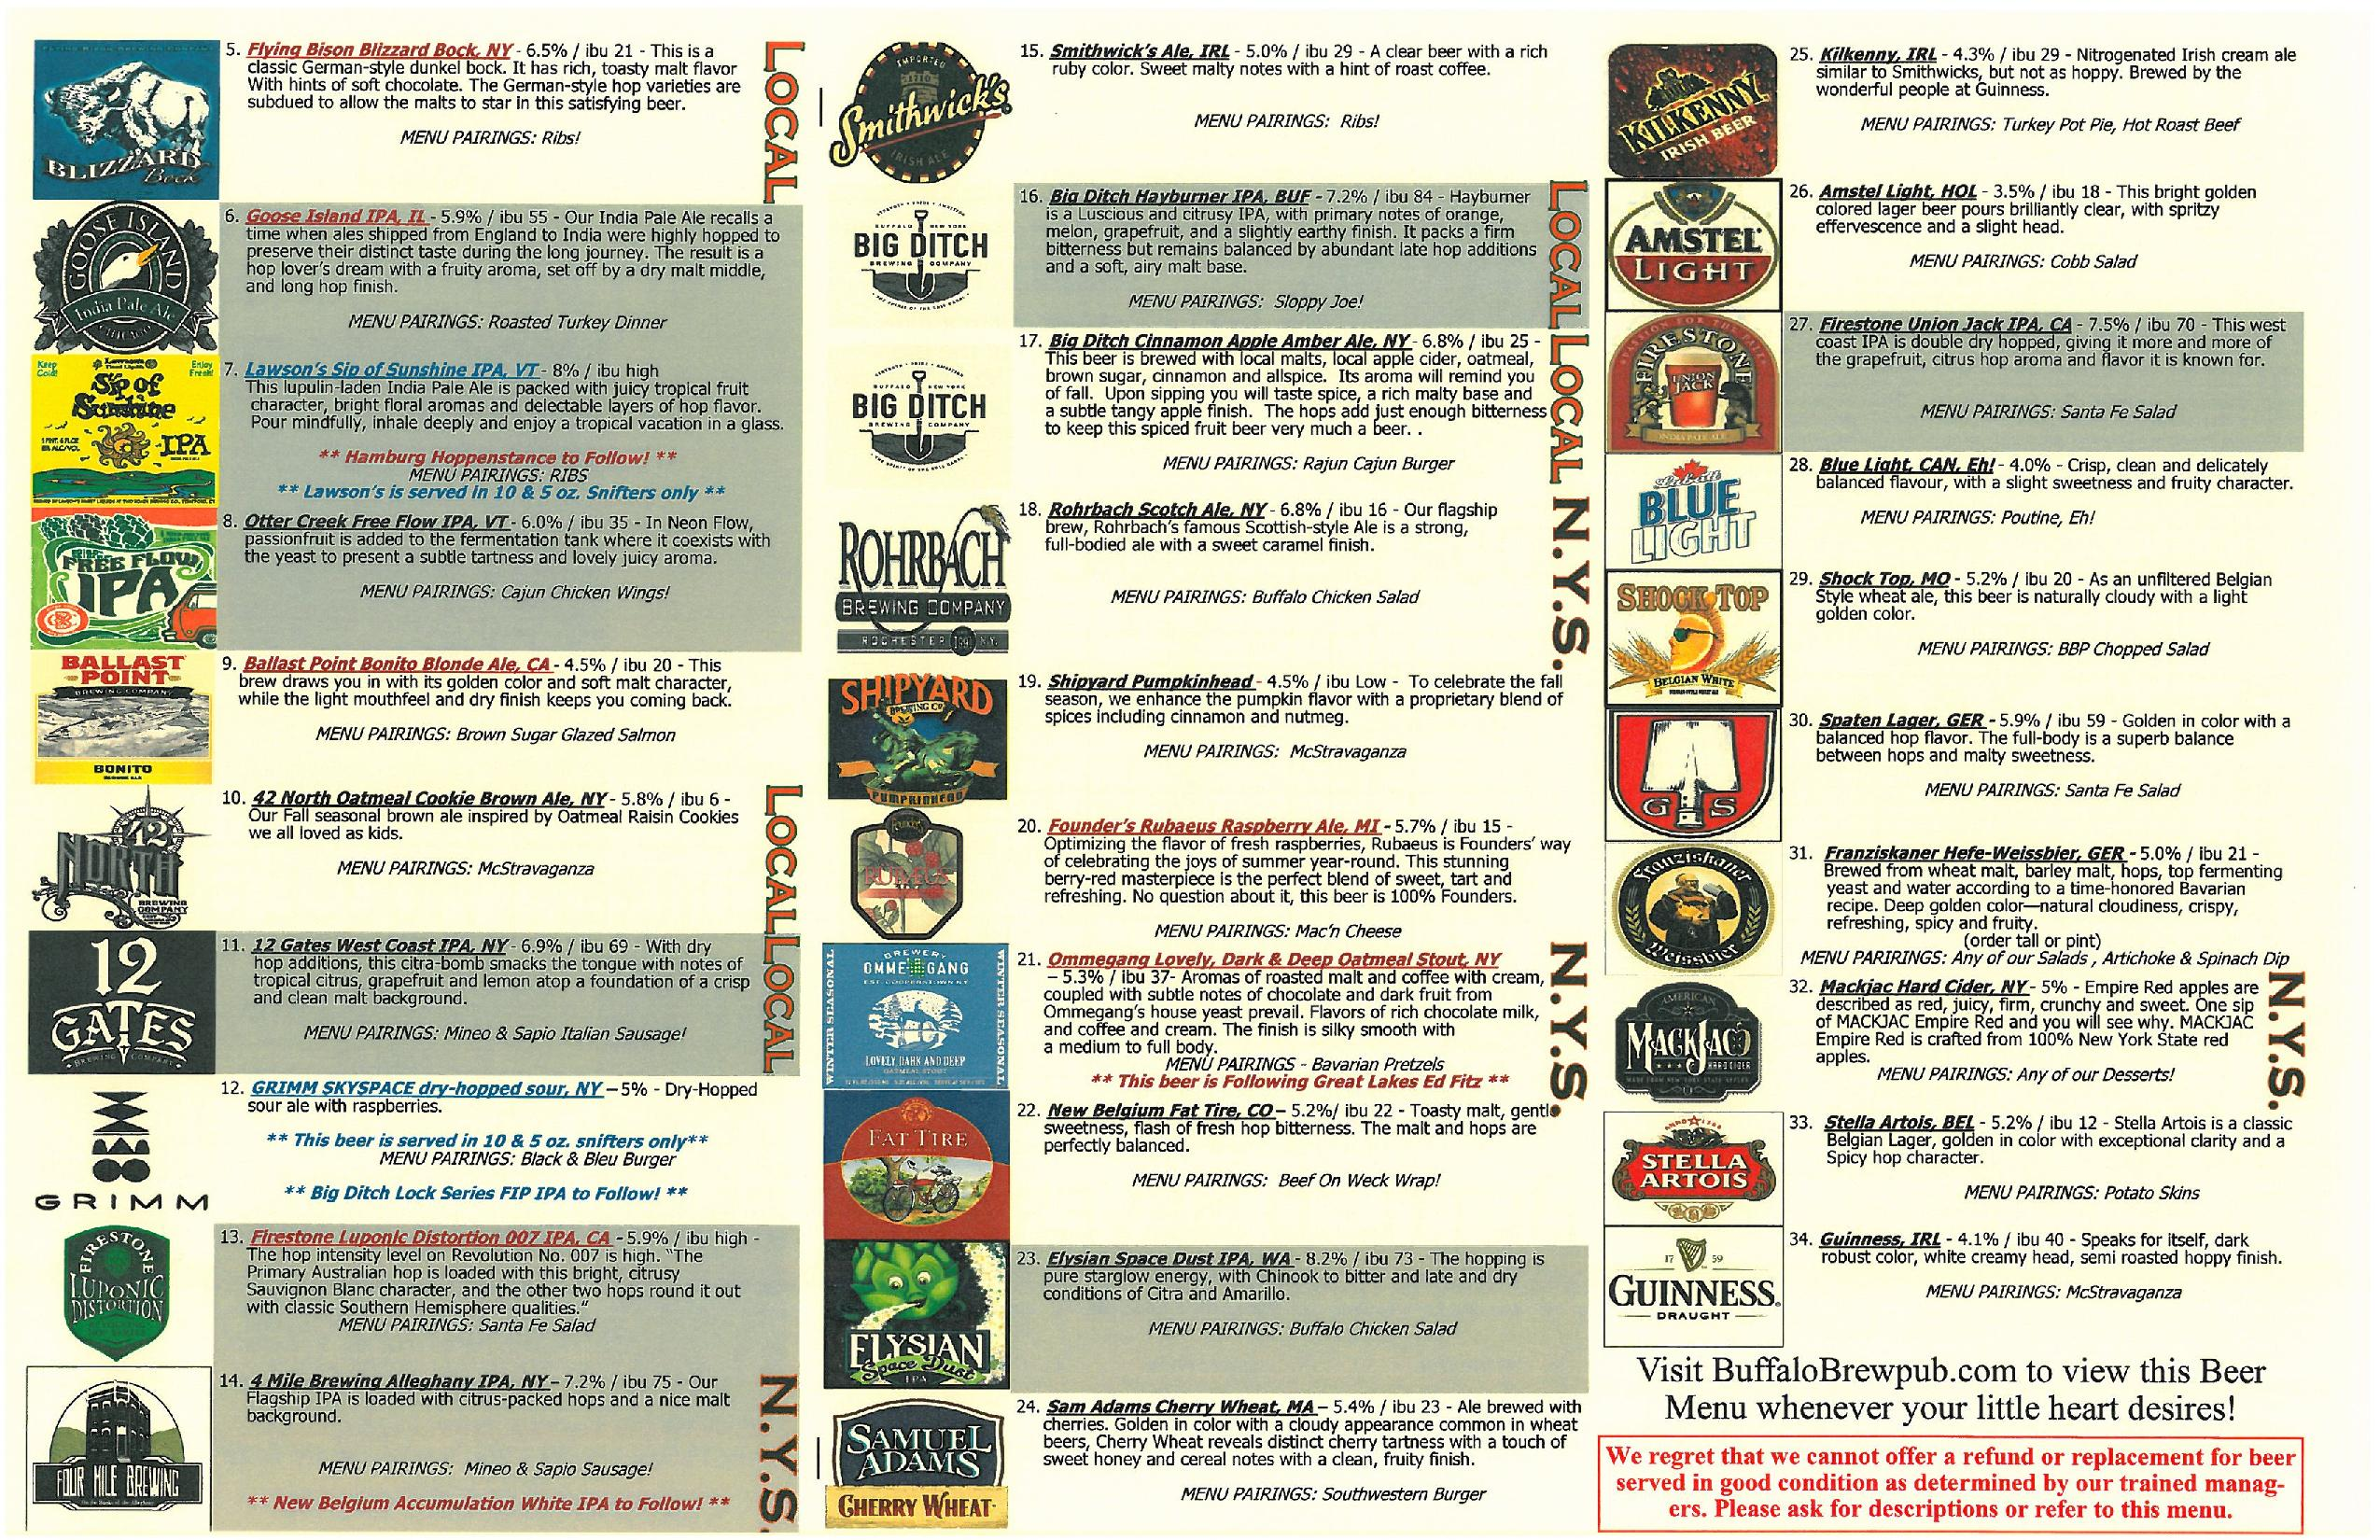 Buffalo Brew Pub Beer Menu – Beer Menu